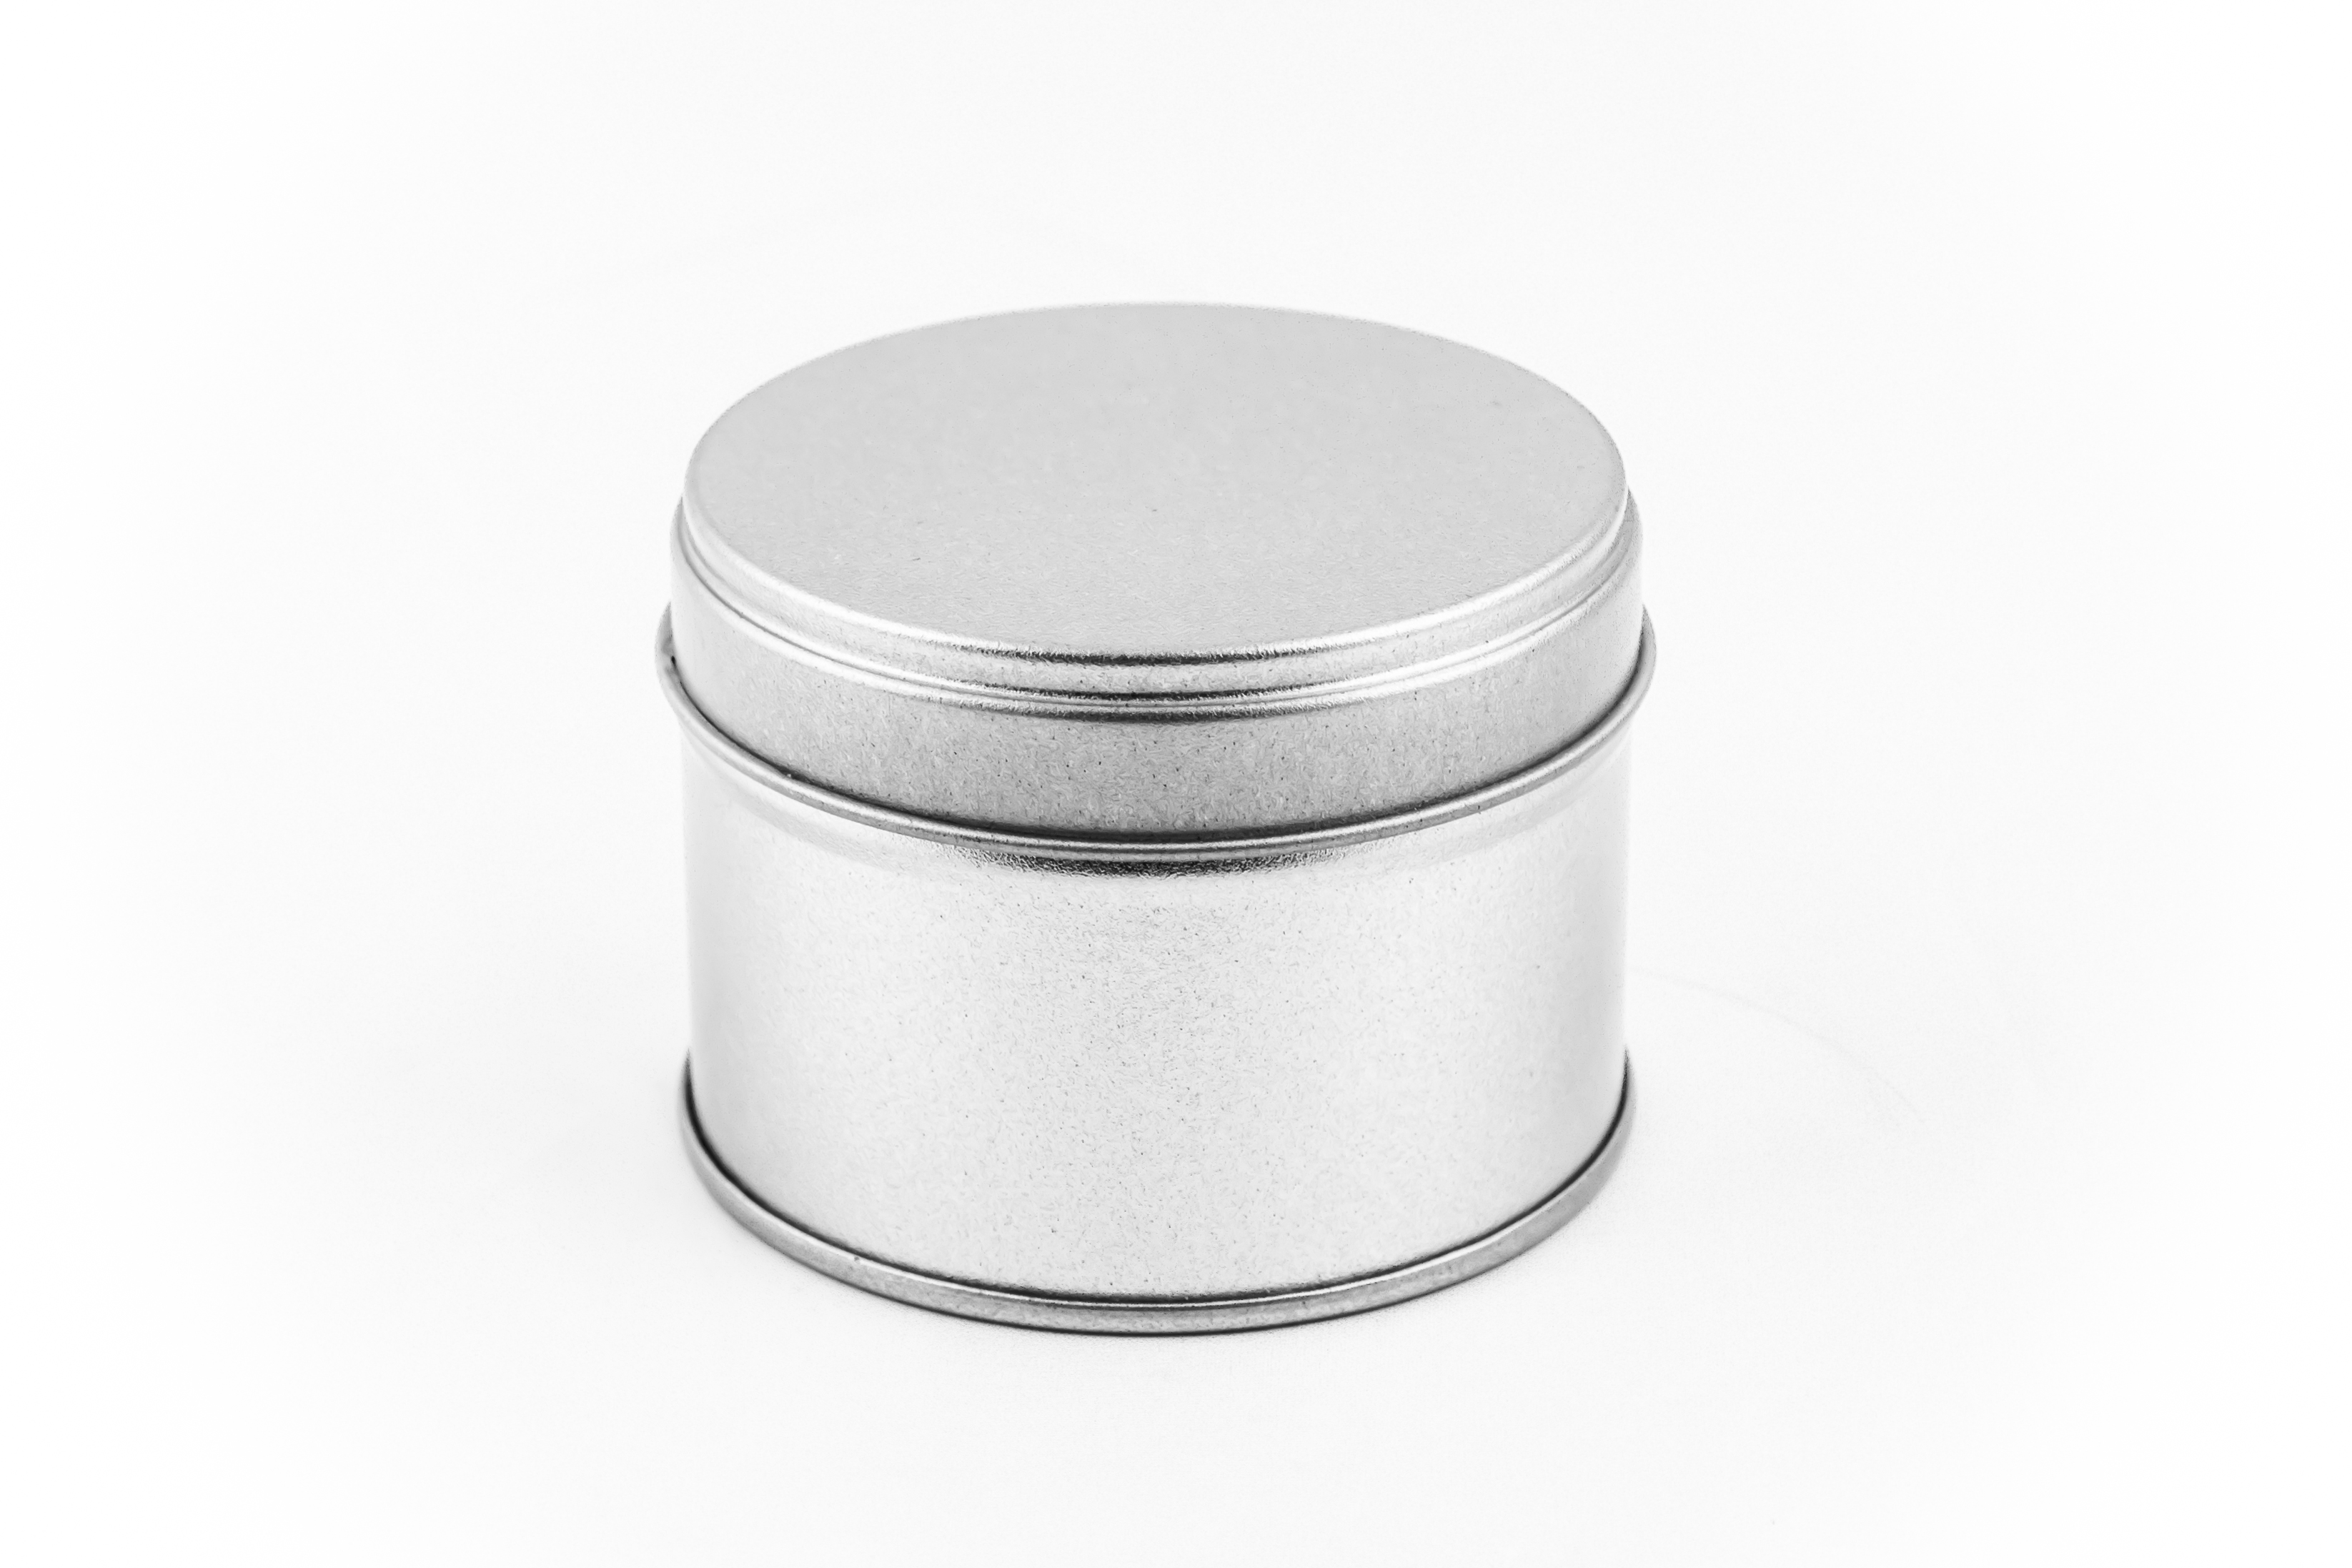 Spice and tea tinbox with double lid